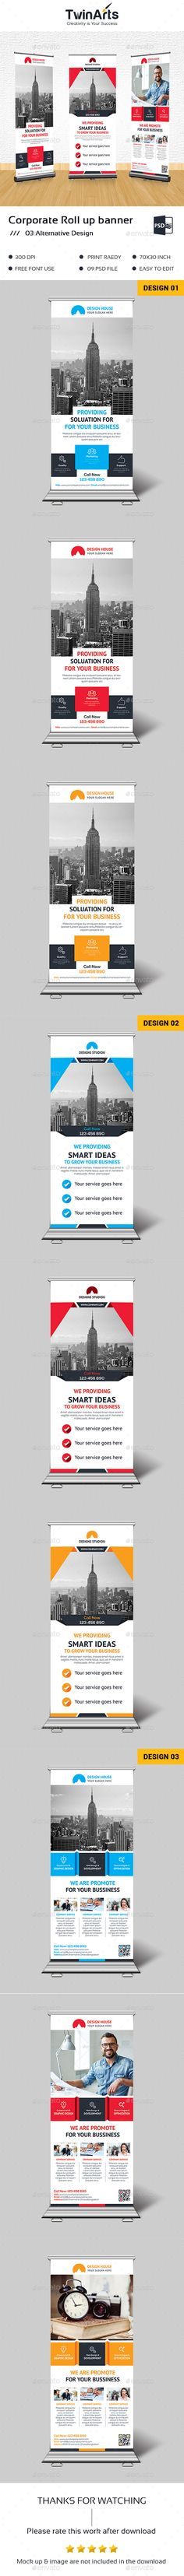 Roll up Banner. — Photoshop PSD #banner stand #property • Available here → https://graphicriver.net/item/roll-up-banner/17600149?ref=pxcr